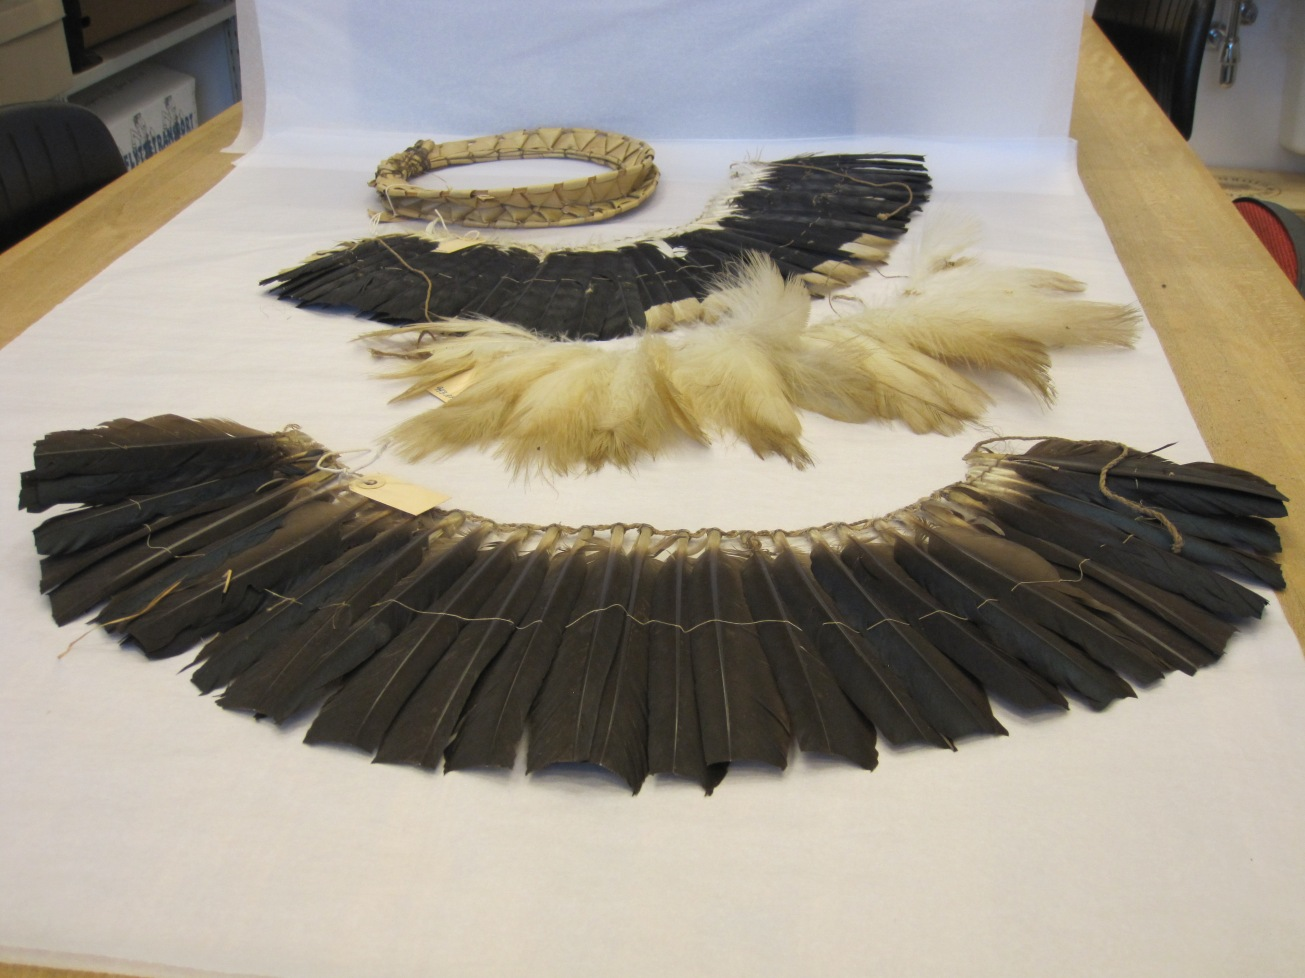 txamatxama, Katxuyana, feather headdress, adornment, amazon, brazil, moesgaard museum, de etnografiske samlinger, ethnography, collections, museum, aarhus, denmark